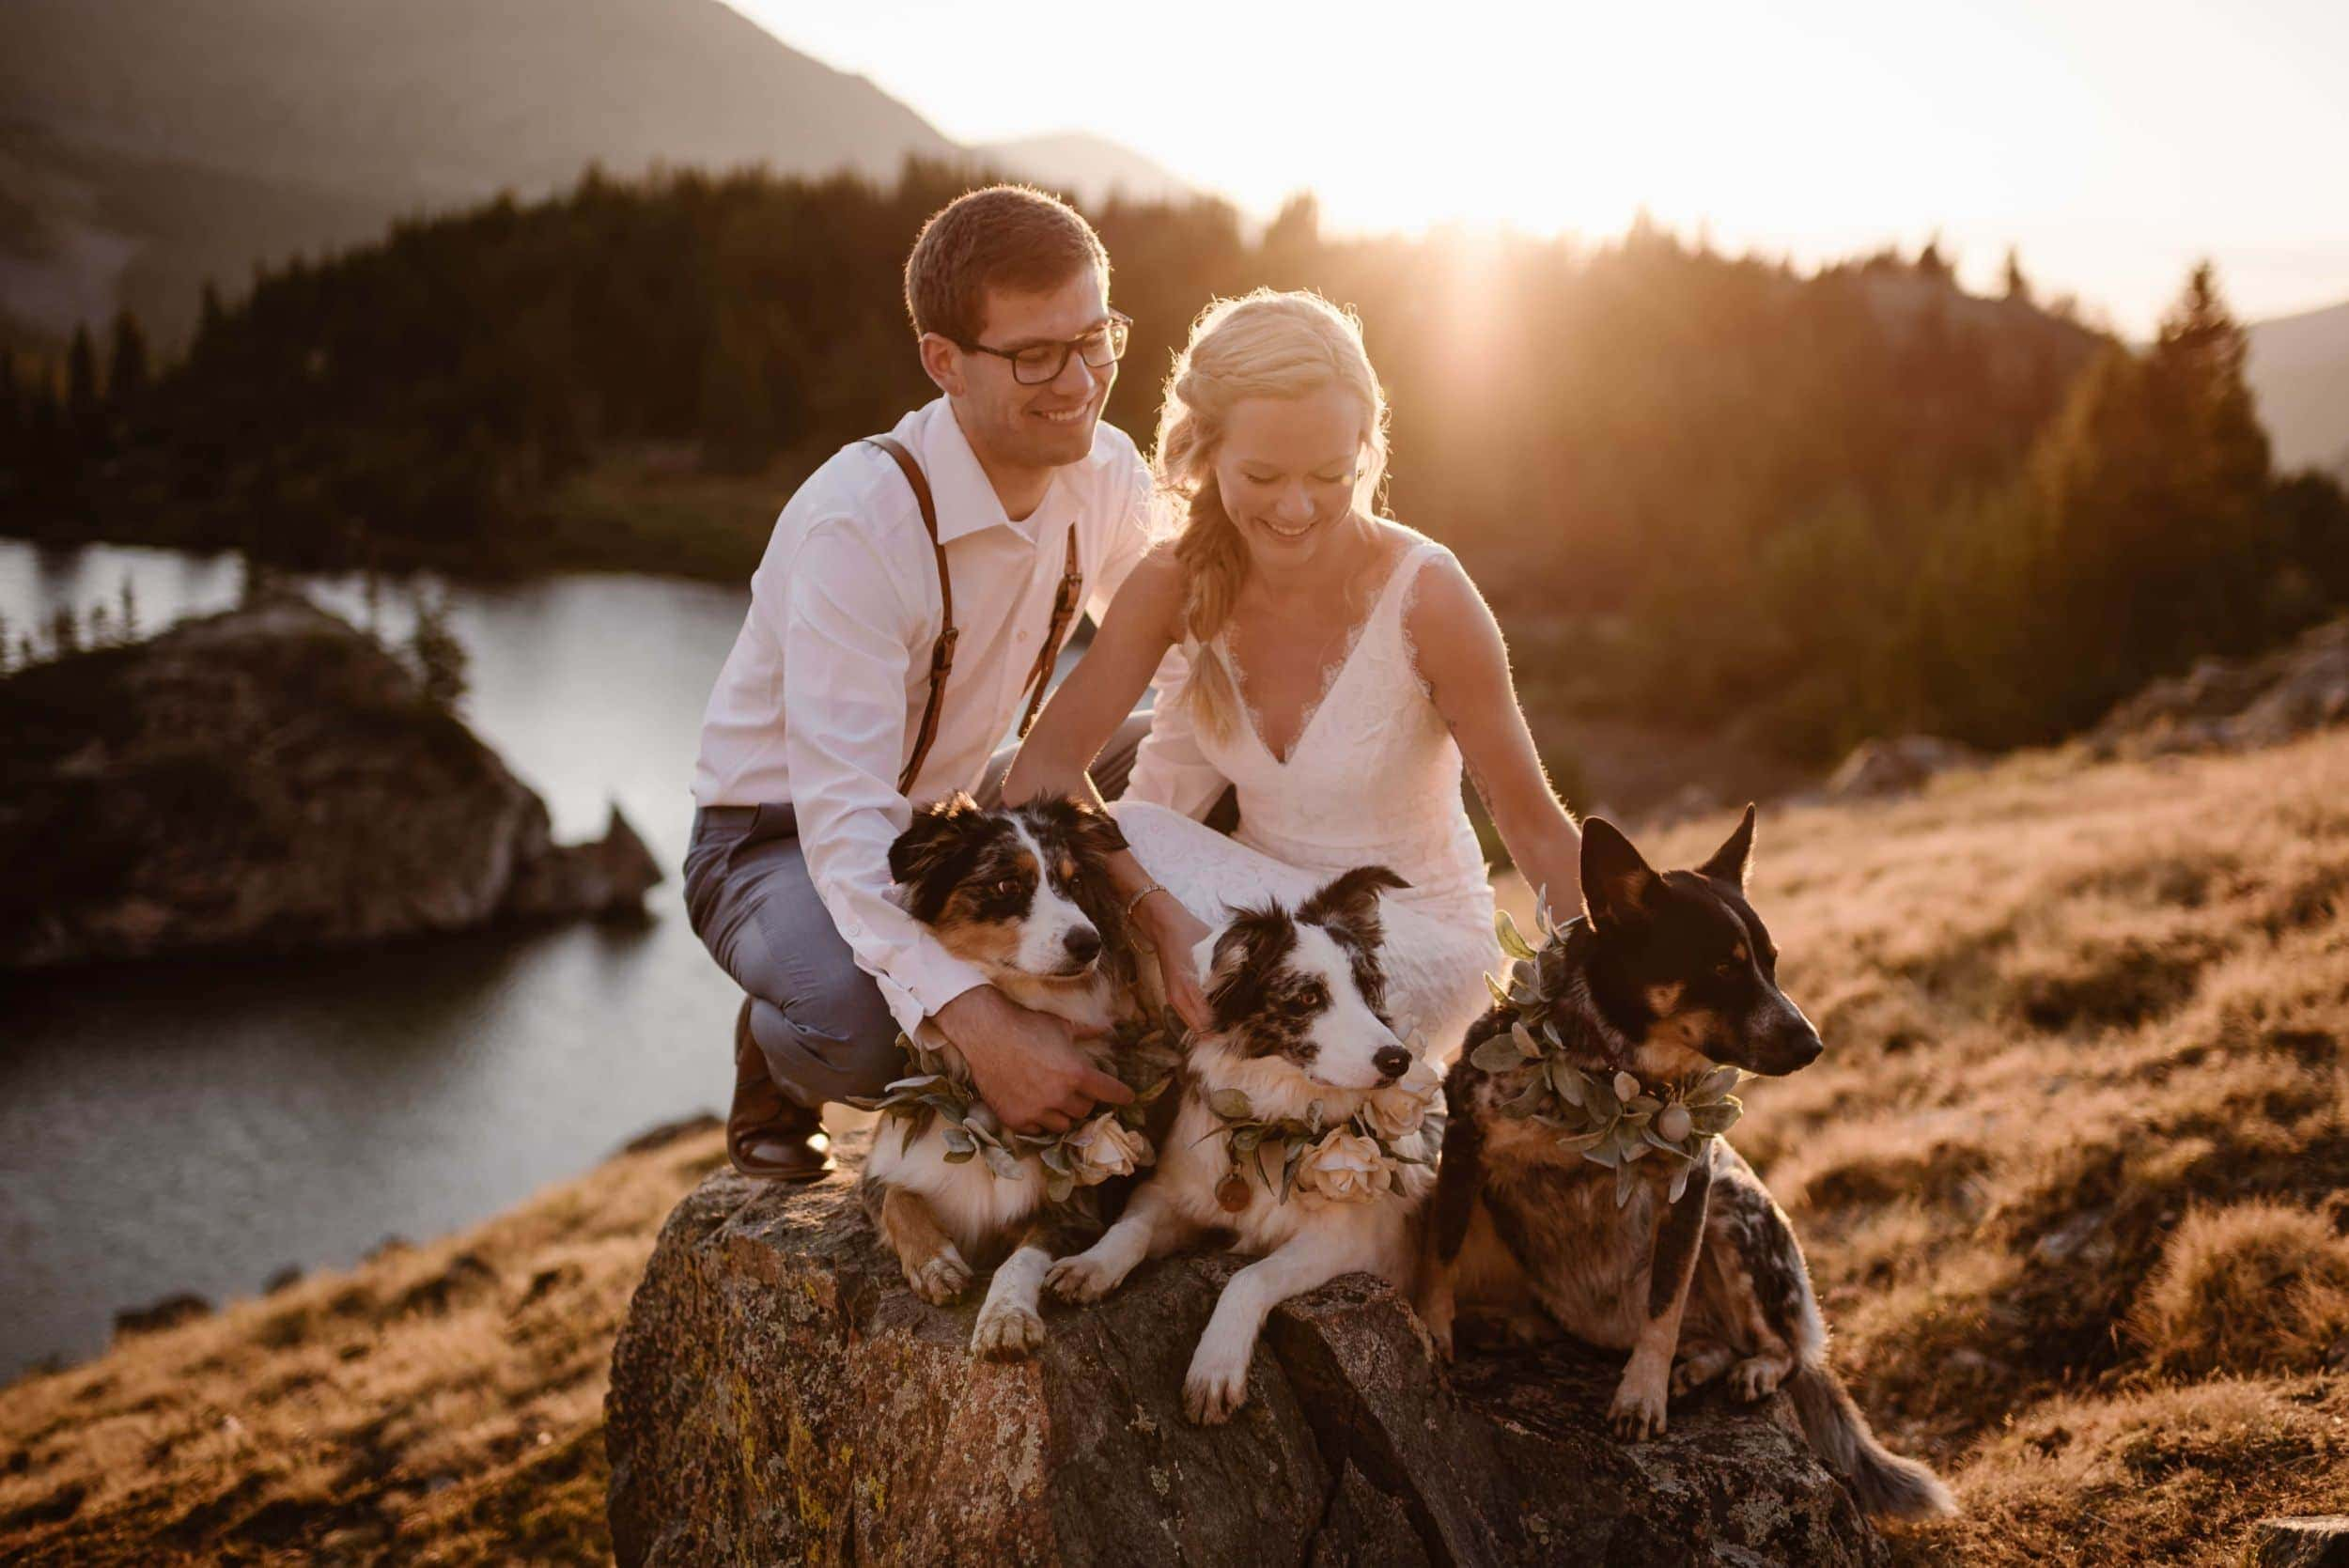 A bride and groom sit on a rock while smiling at their three dogs sitting beside them.